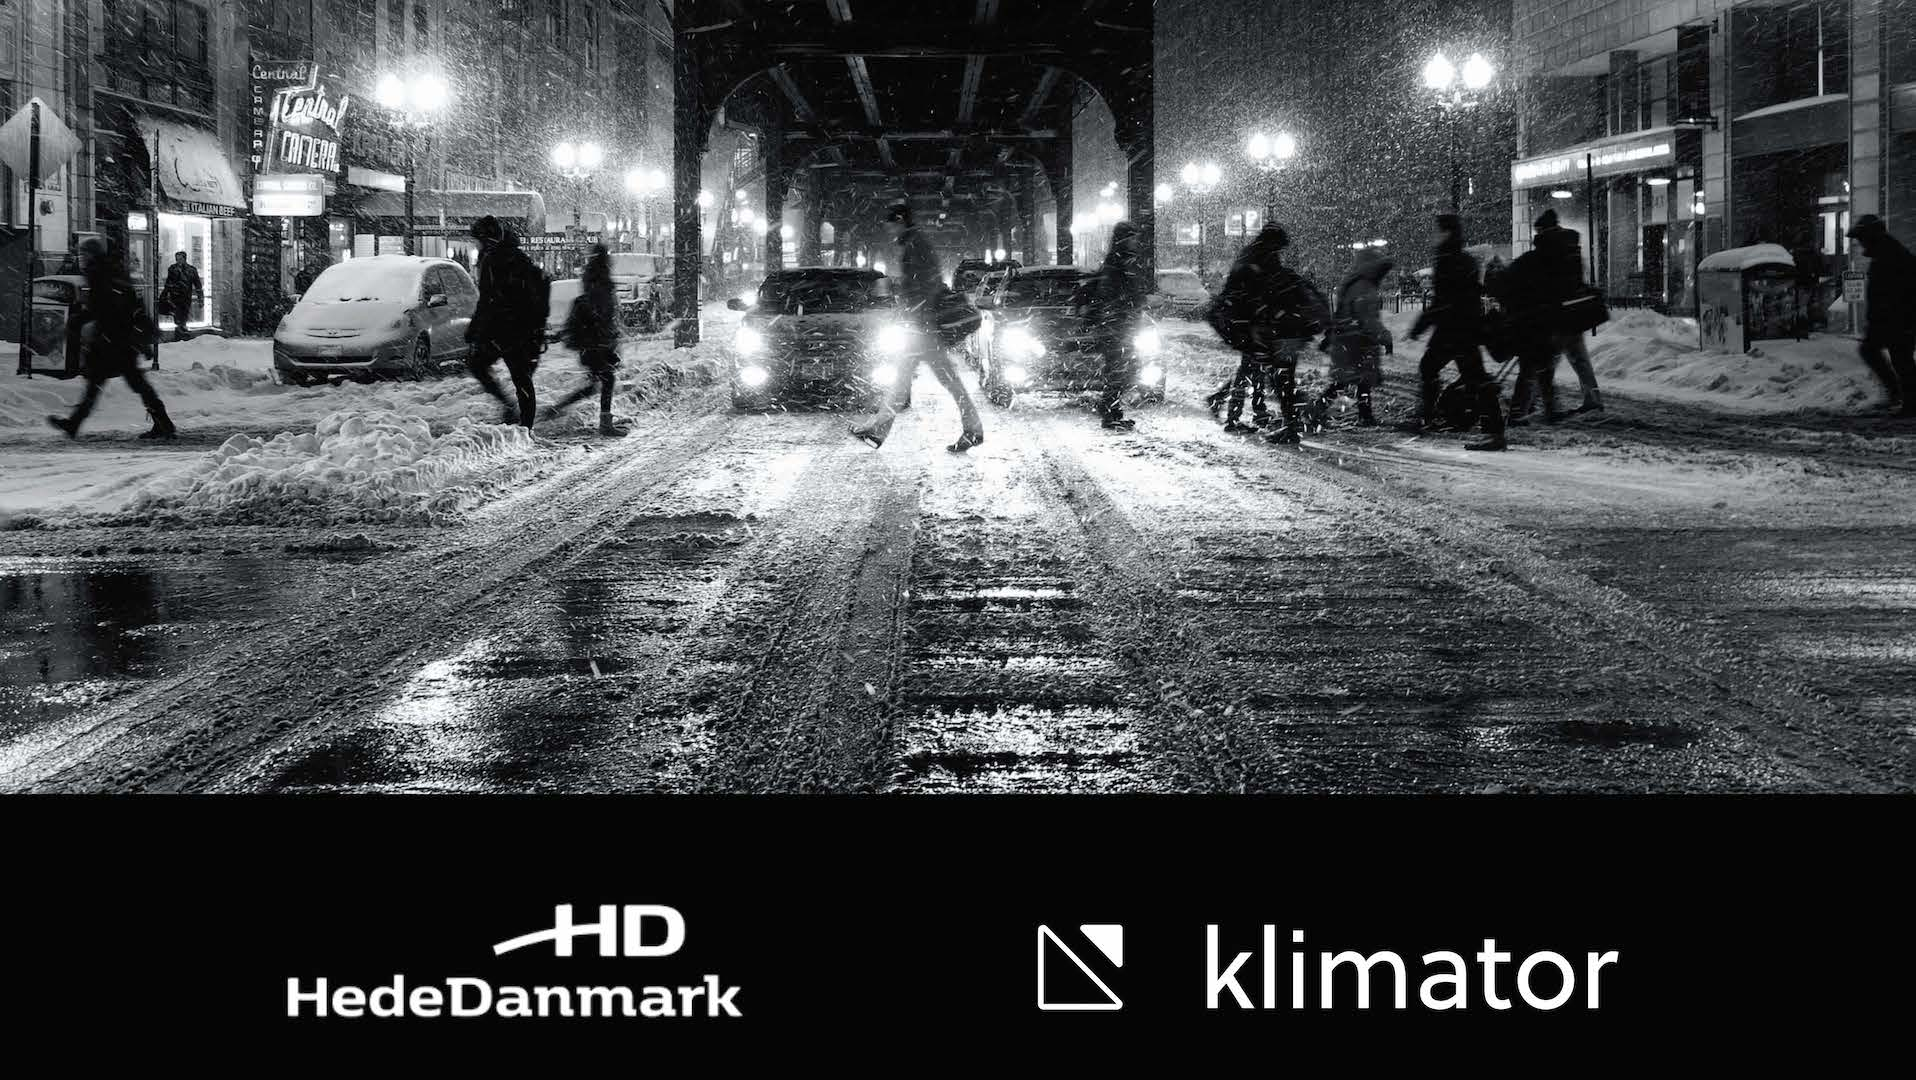 Klimator acquires business from HedeDanmark